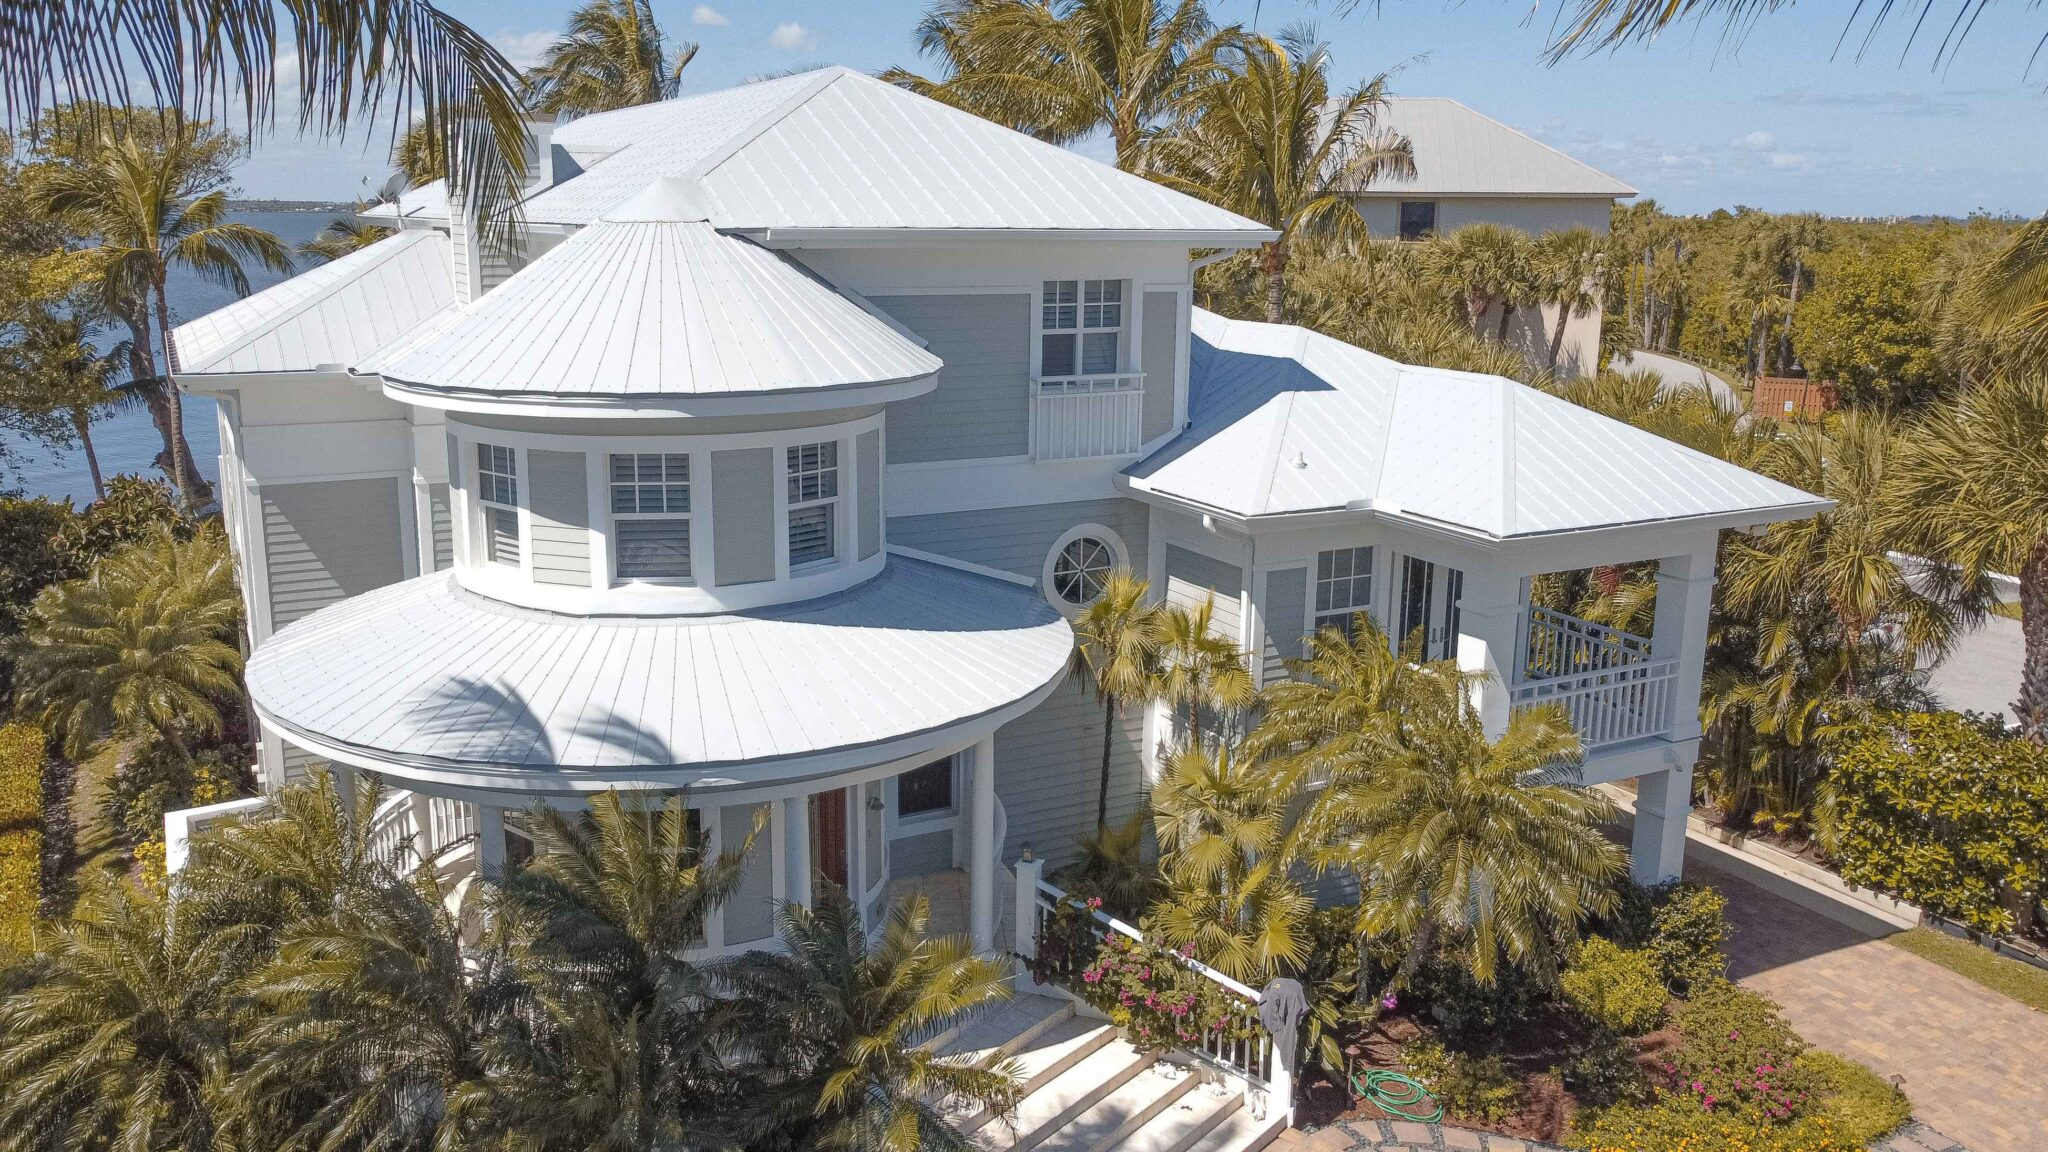 Why Choose Us For Roofing Solutions - Roofing Experts